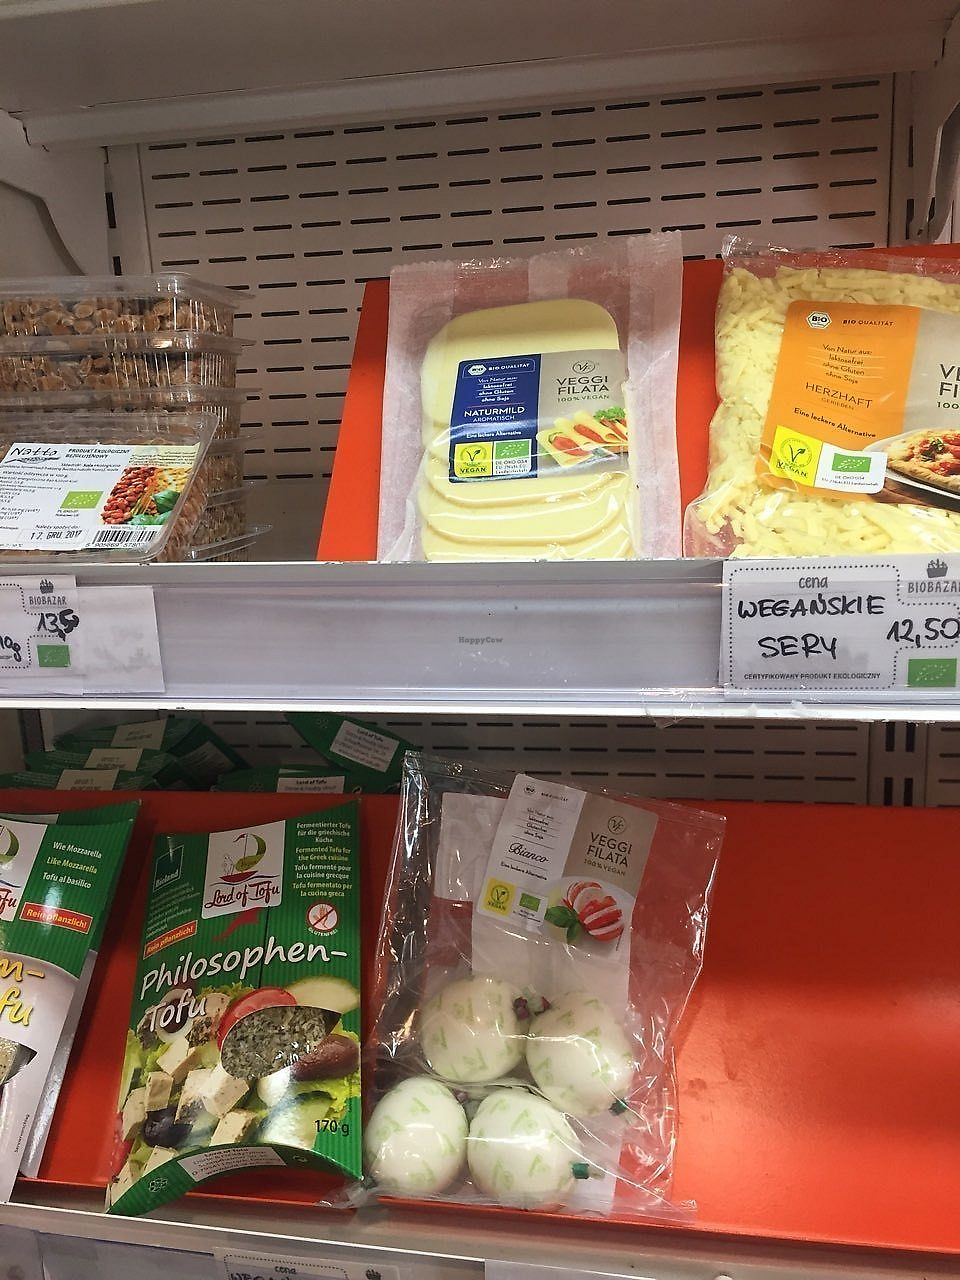 """Photo of BioBazar  by <a href=""""/members/profile/Enivid"""">Enivid</a> <br/>Selection of vegan cheeses at one stand <br/> December 15, 2017  - <a href='/contact/abuse/image/58175/335877'>Report</a>"""